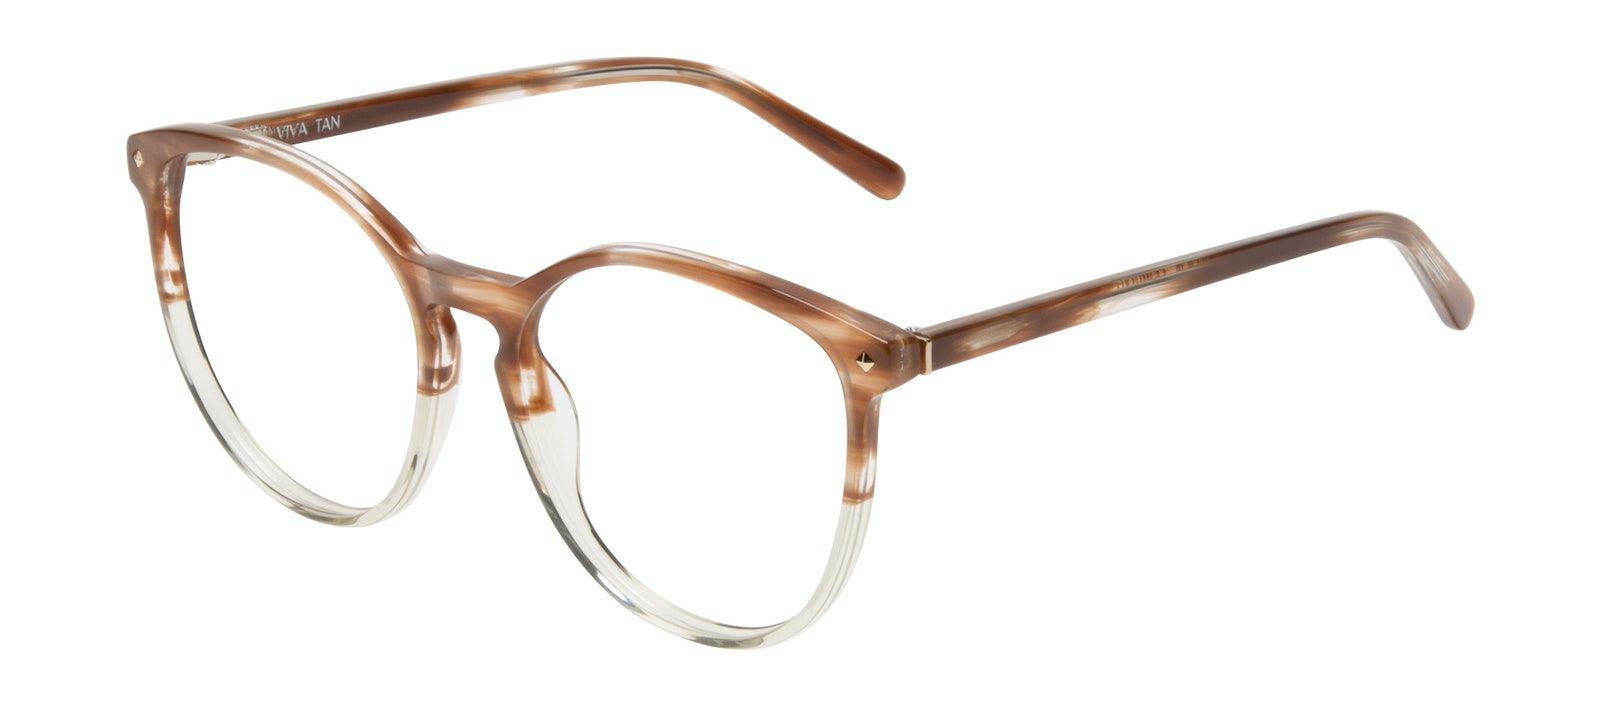 Affordable Fashion Glasses Round Eyeglasses Women Viva Tan Tilt